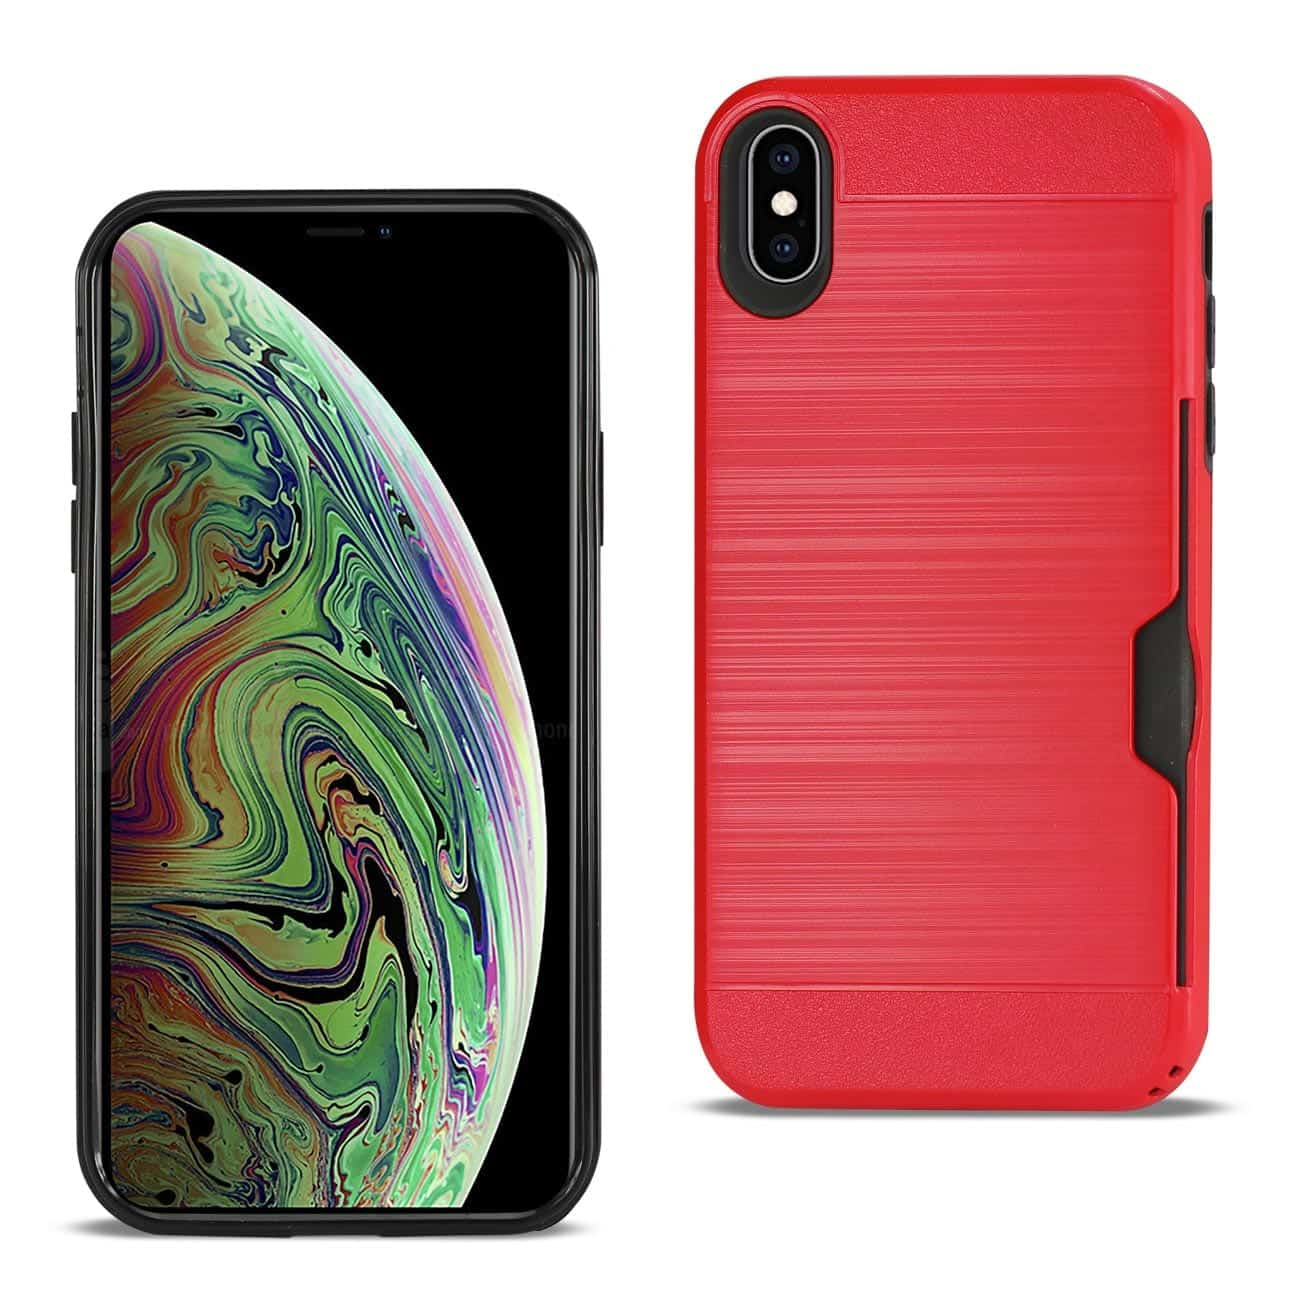 iPhone XS Max Slim Armor Hybrid Case With Card Holder In Red